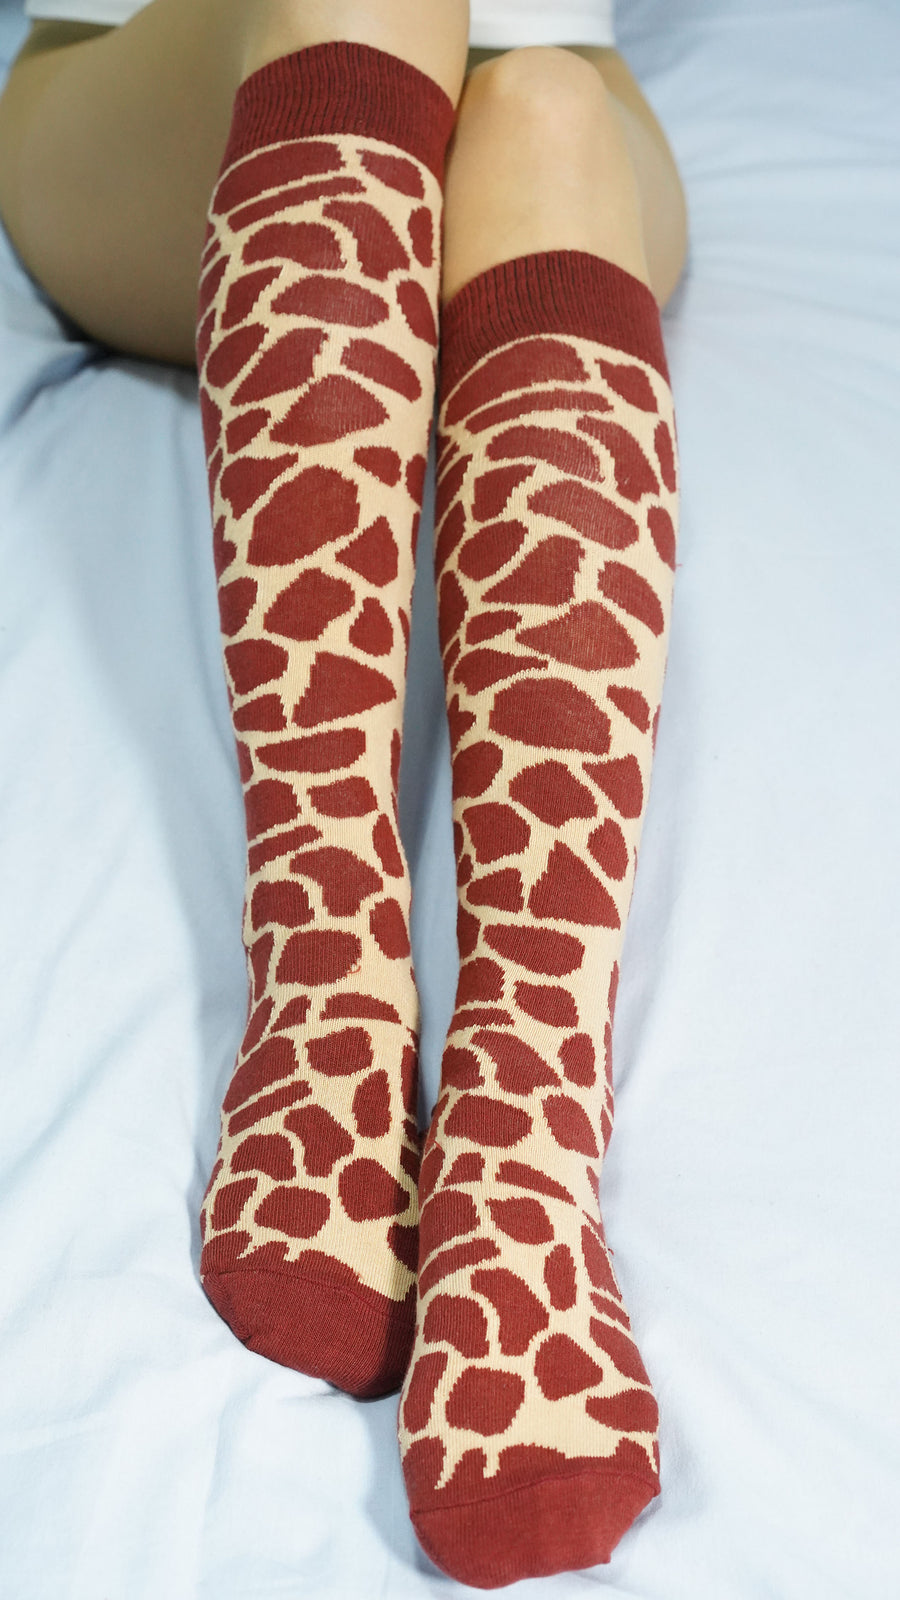 Women's Giraffe Knee High Socks